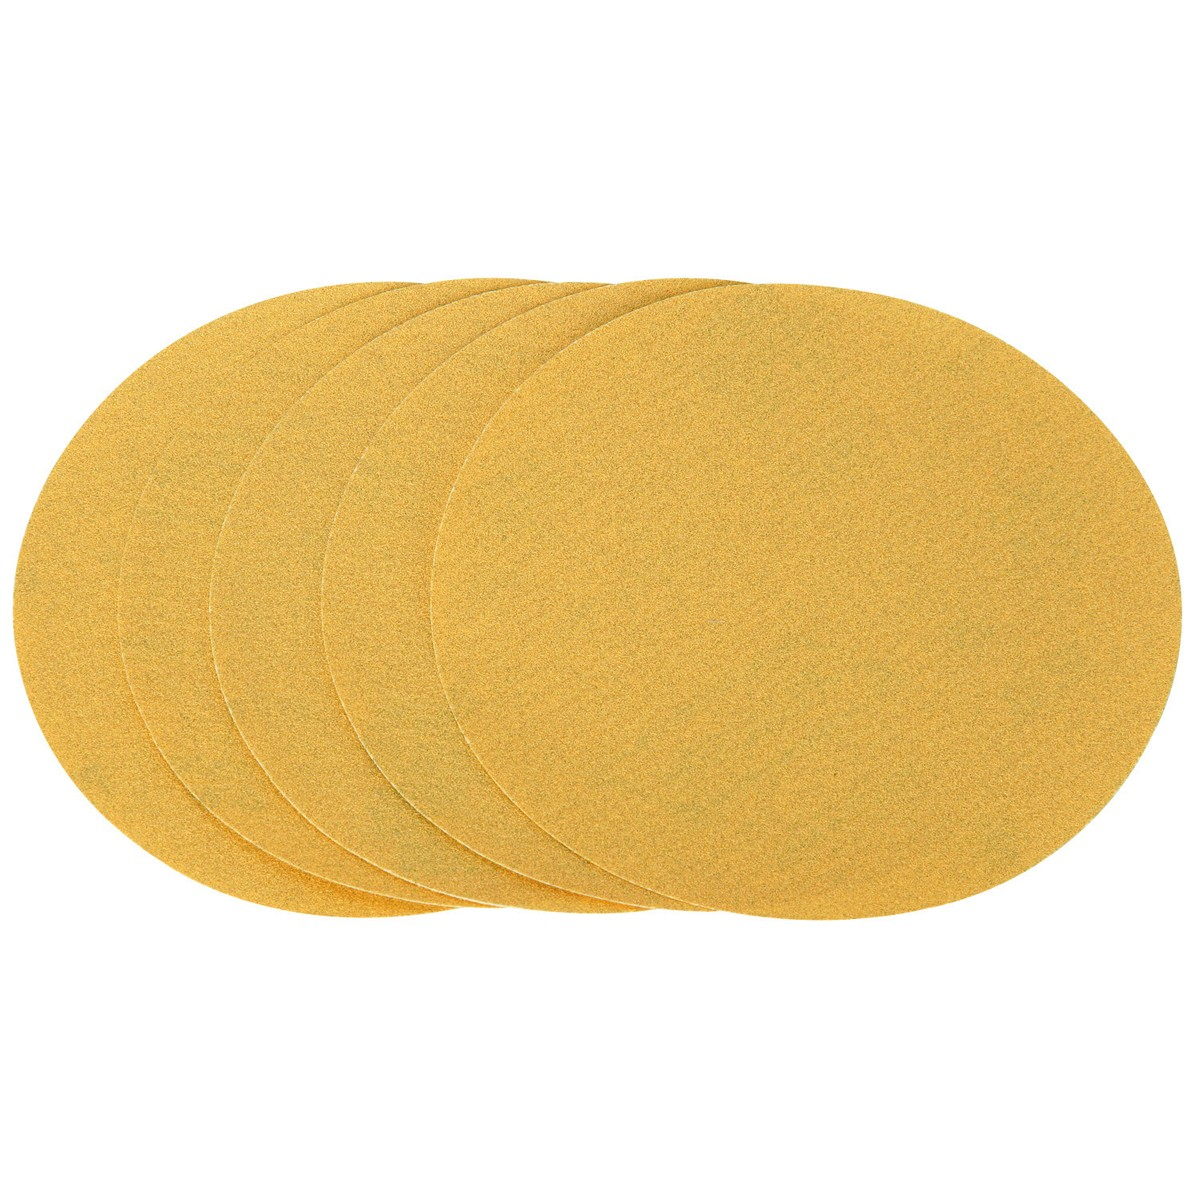 6 in. 120 Grit PSA Sanding Discs 5 Pc